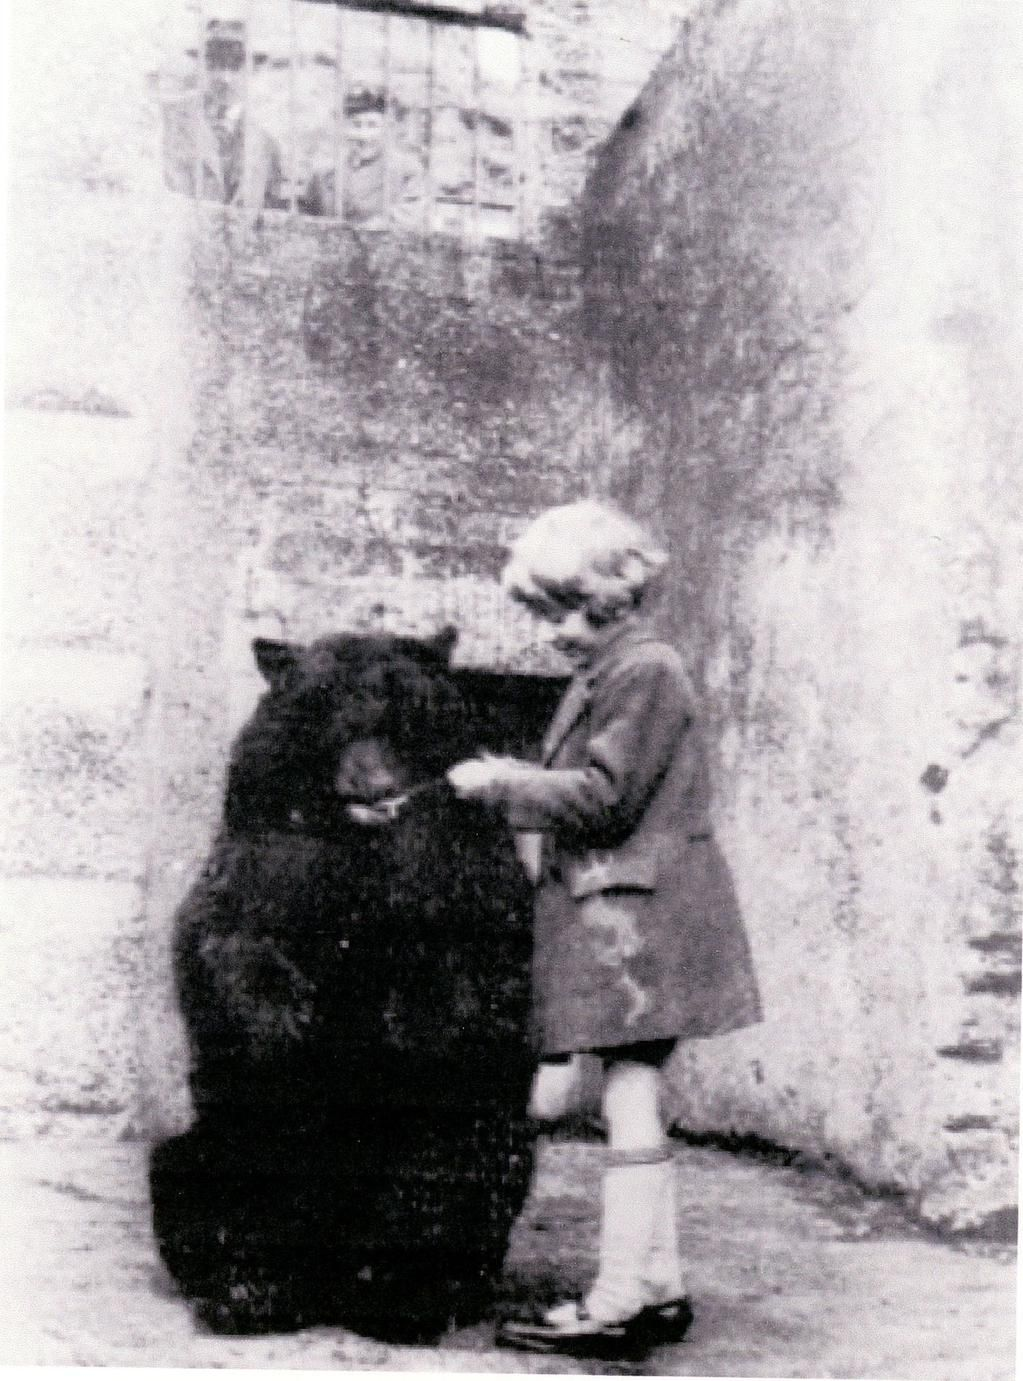 Vintagephotos On With Images Pooh Winnie The Pooh